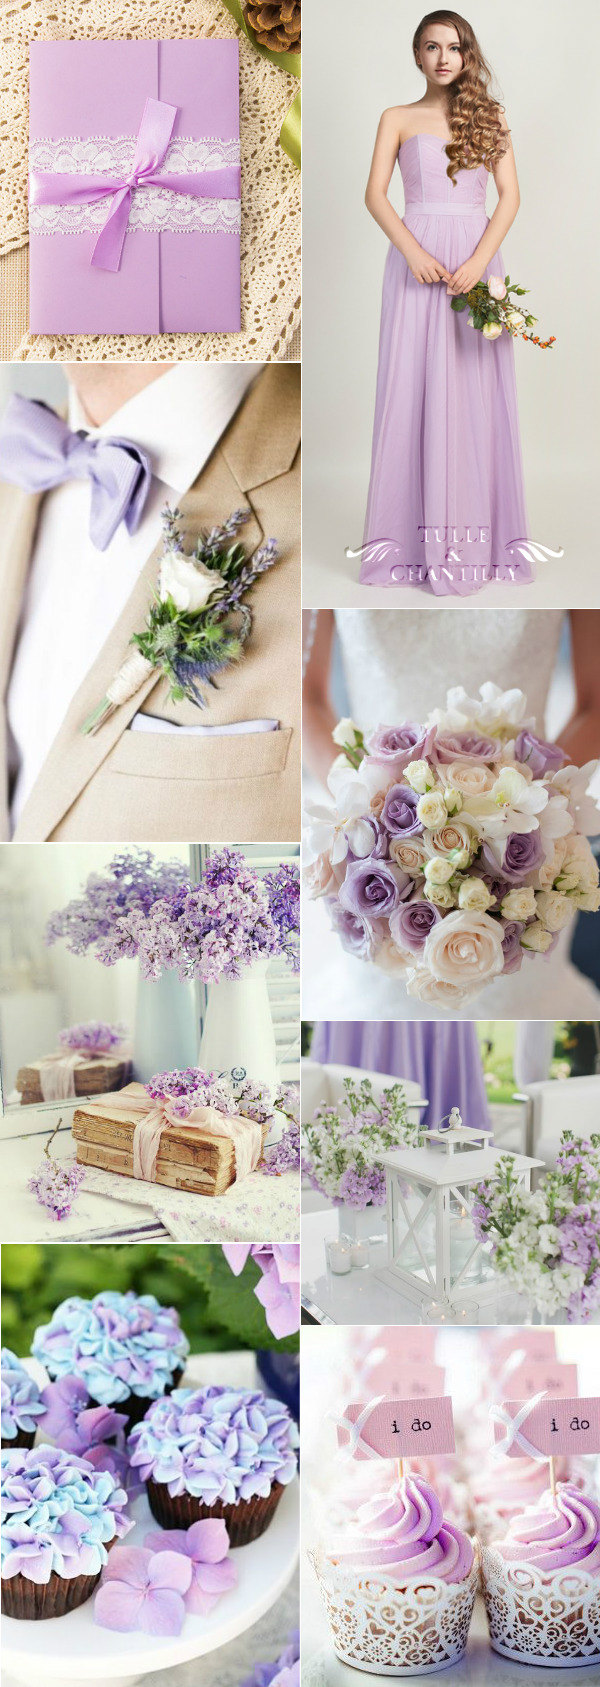 Glamorous Purple Wedding Themes Ideas With Elegant and Beautiful ...